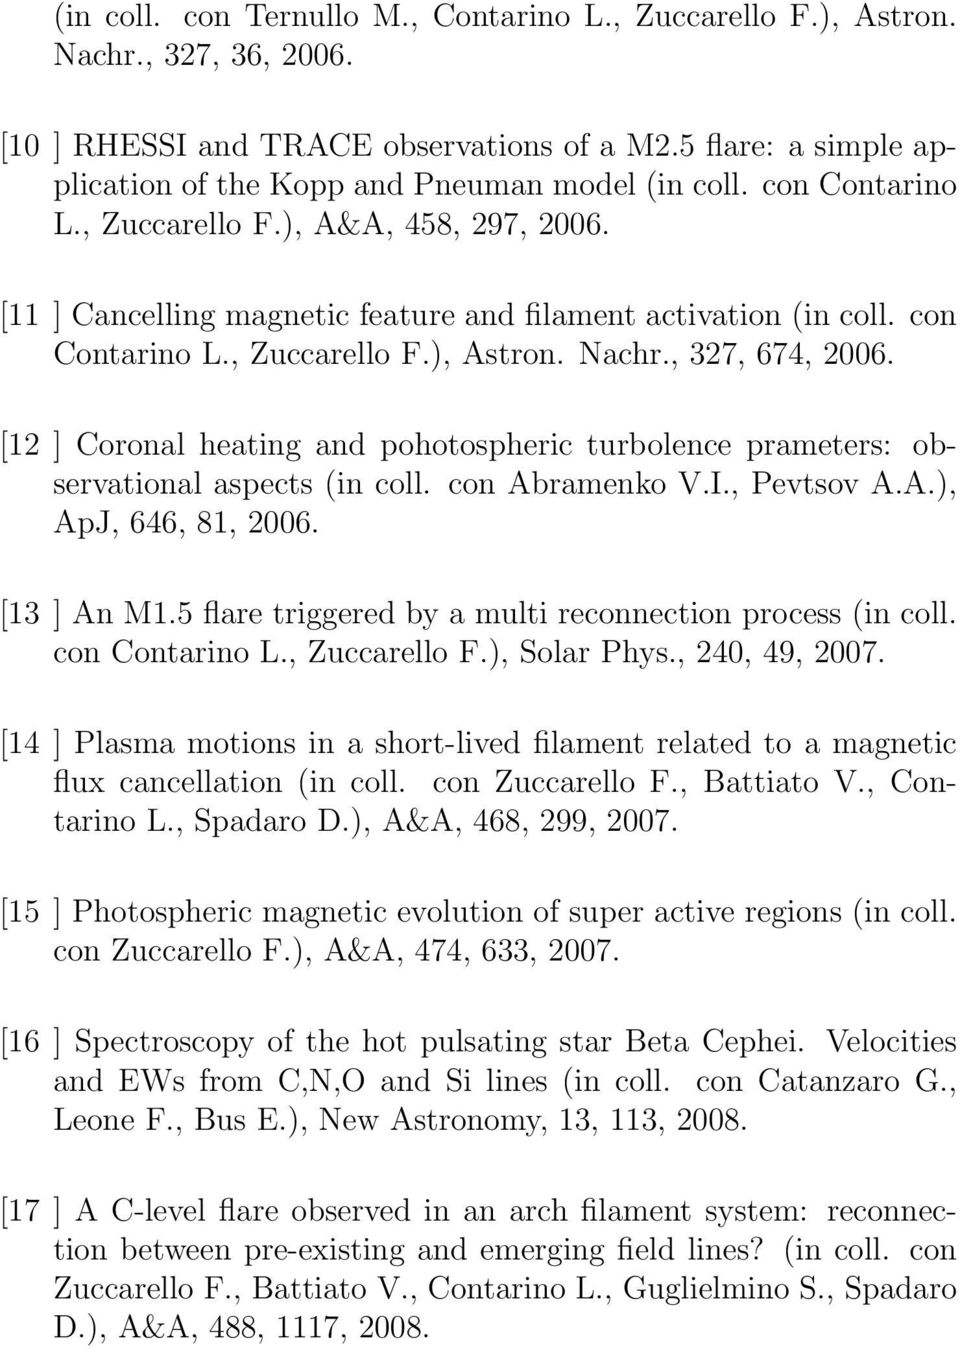 con Contarino L., Zuccarello F.), Astron. Nachr., 327, 674, 2006. [12 ] Coronal heating and pohotospheric turbolence prameters: observational aspects (in coll. con Abramenko V.I., Pevtsov A.A.), ApJ, 646, 81, 2006.